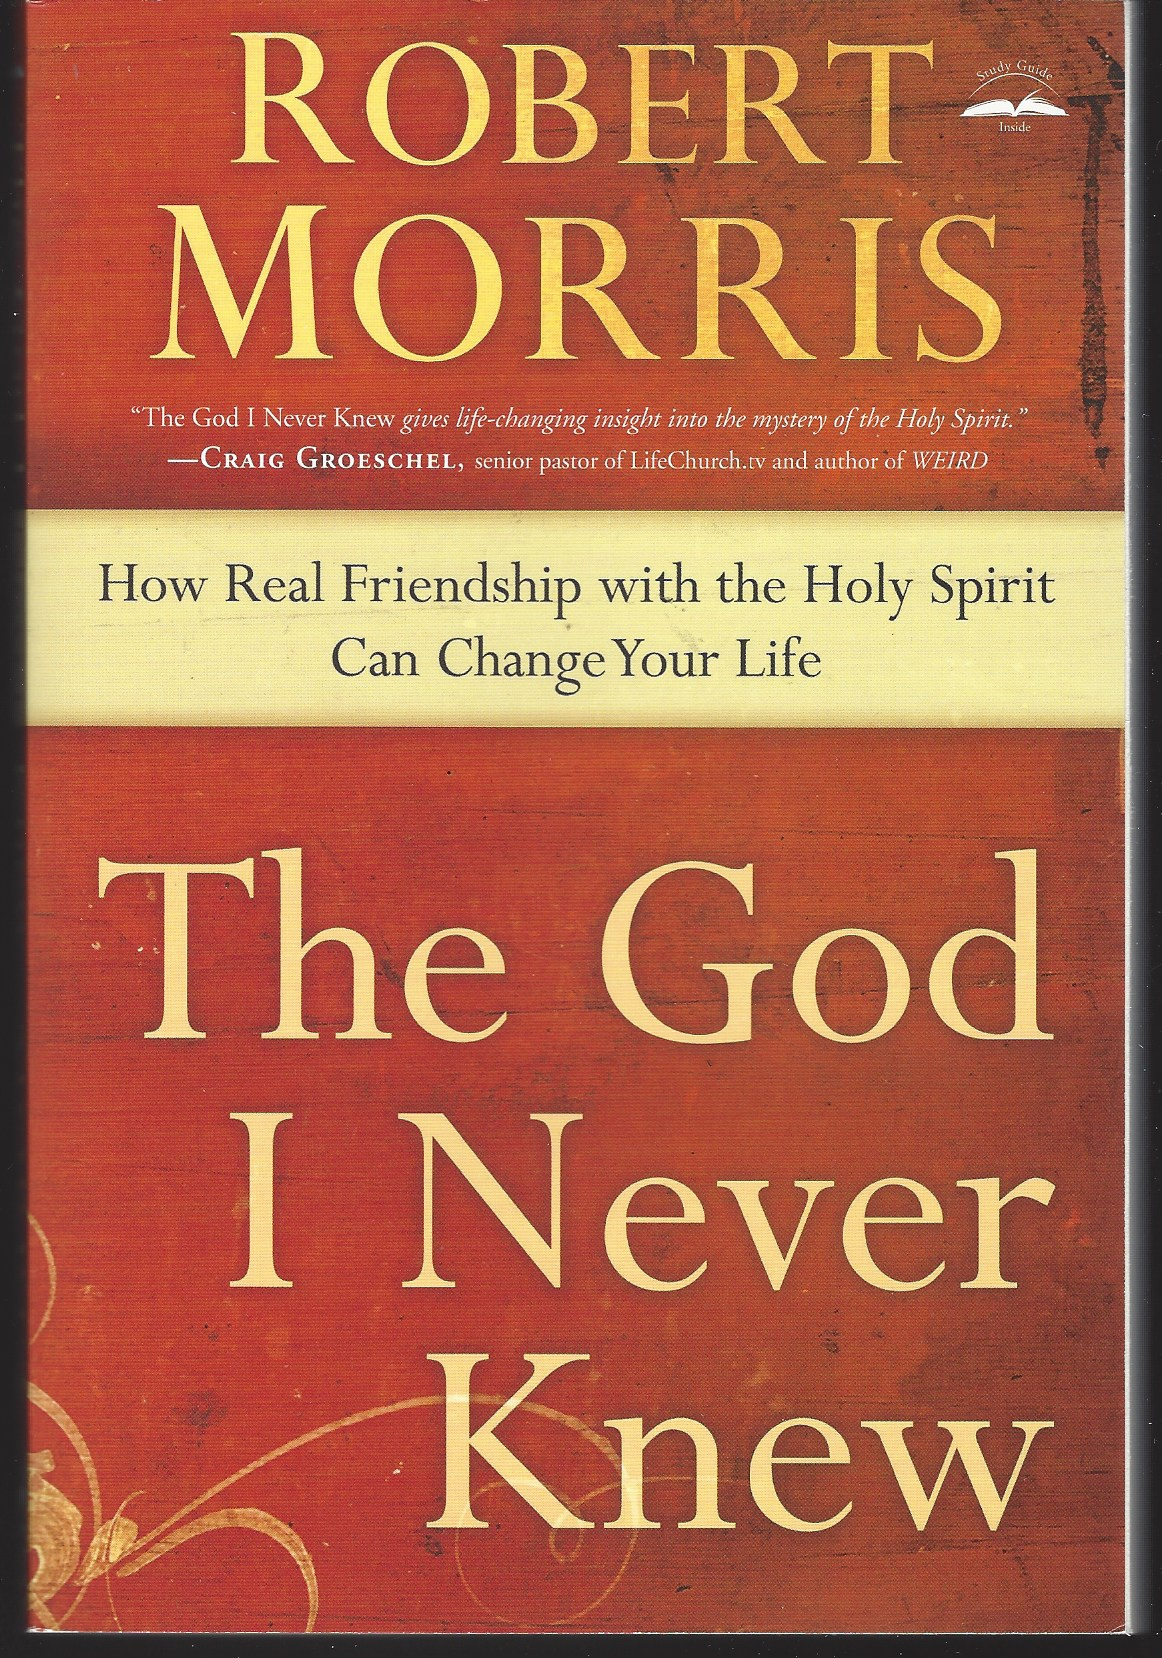 Image for THE GOD I NEVER KNEW How Real Friendship with the Holy Spirit Can Change Your Life